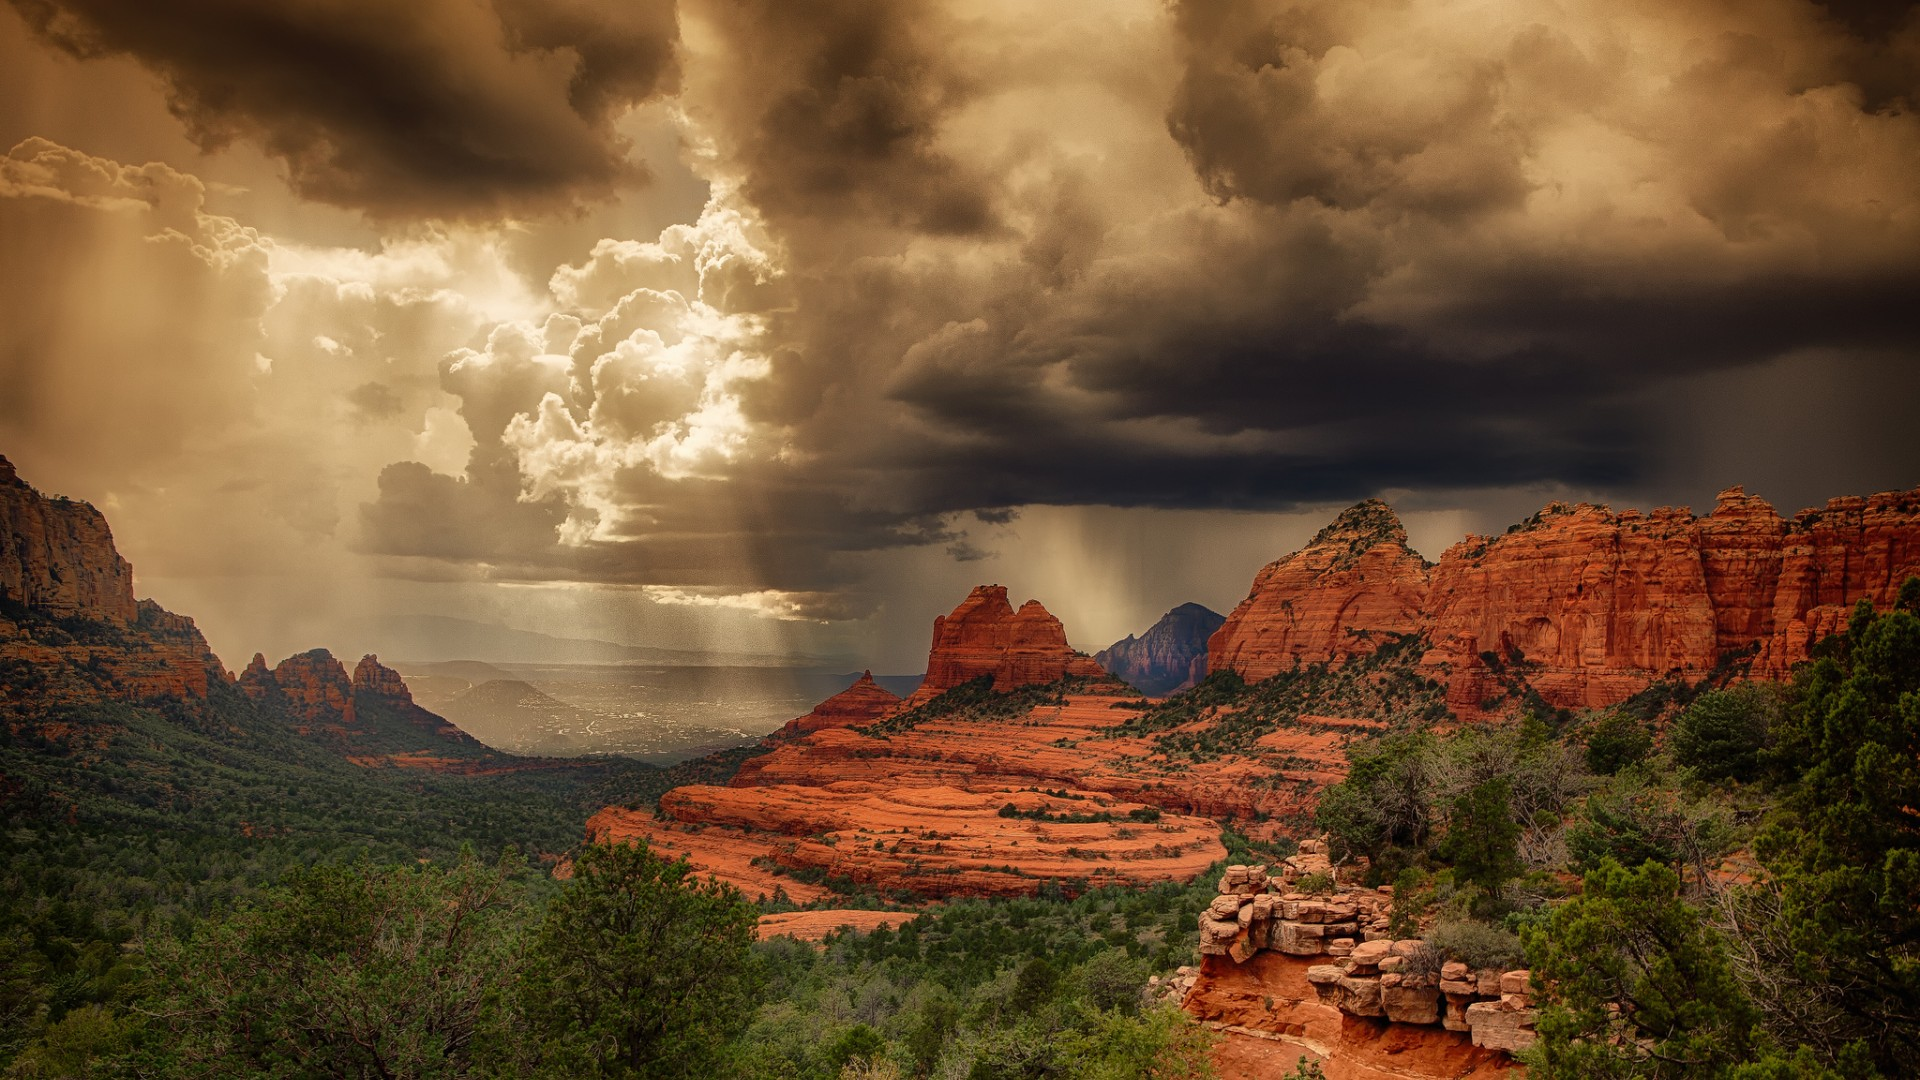 Desktop wallpapers Storm clouds over the red rocks of Sedona Arizona 1920x1080